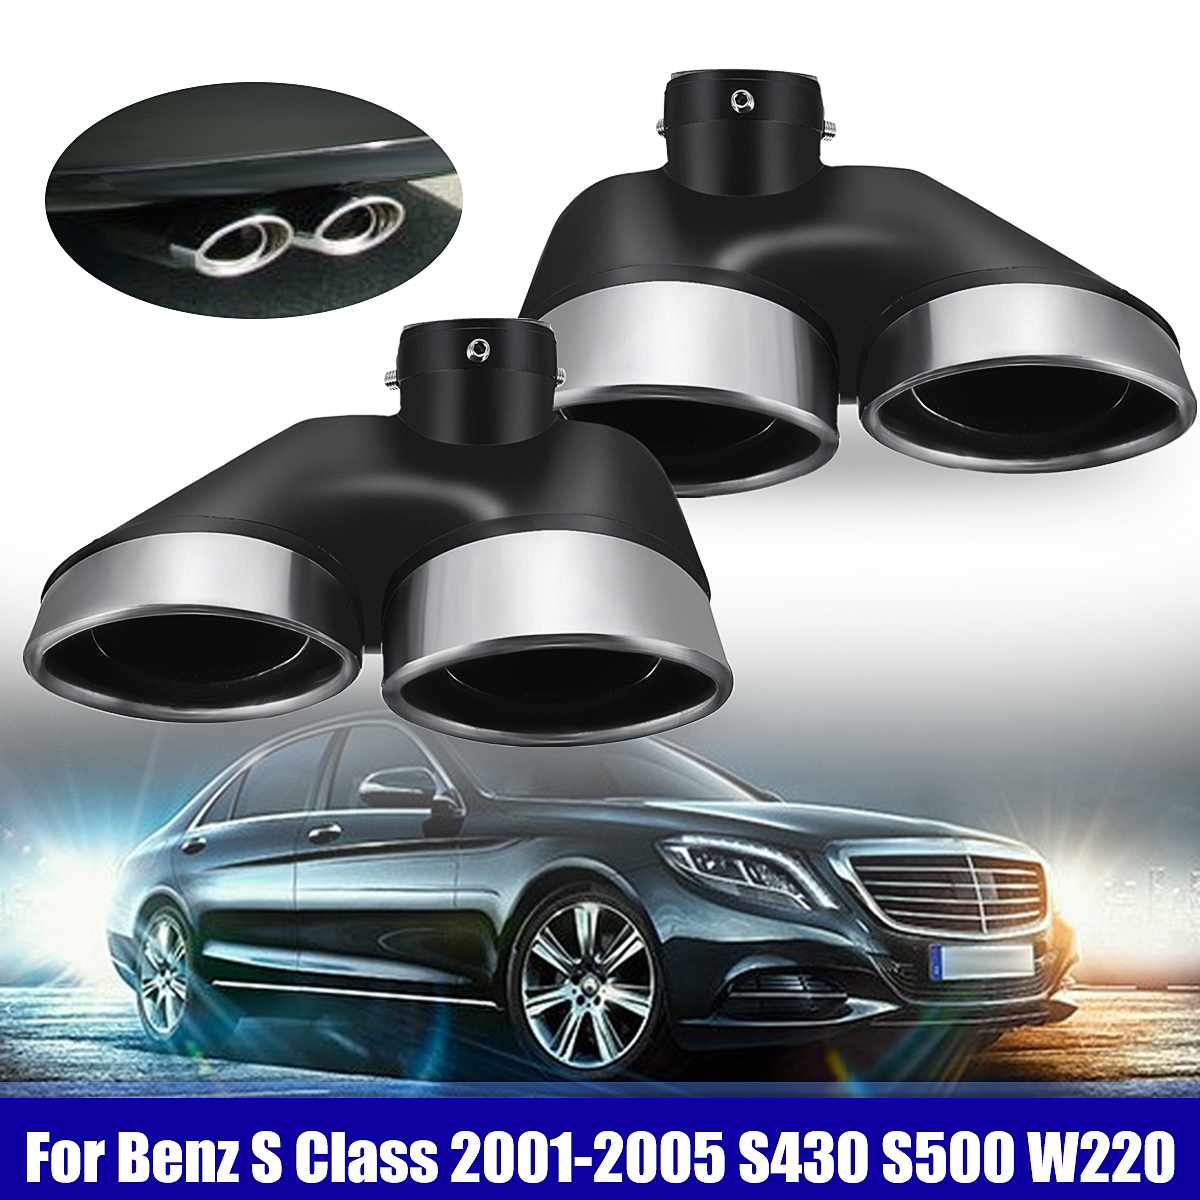 Dual Exhaust Muffler Pipe Tip For Mercedes Benz 2001-2005 S430 S500 W220 AMG